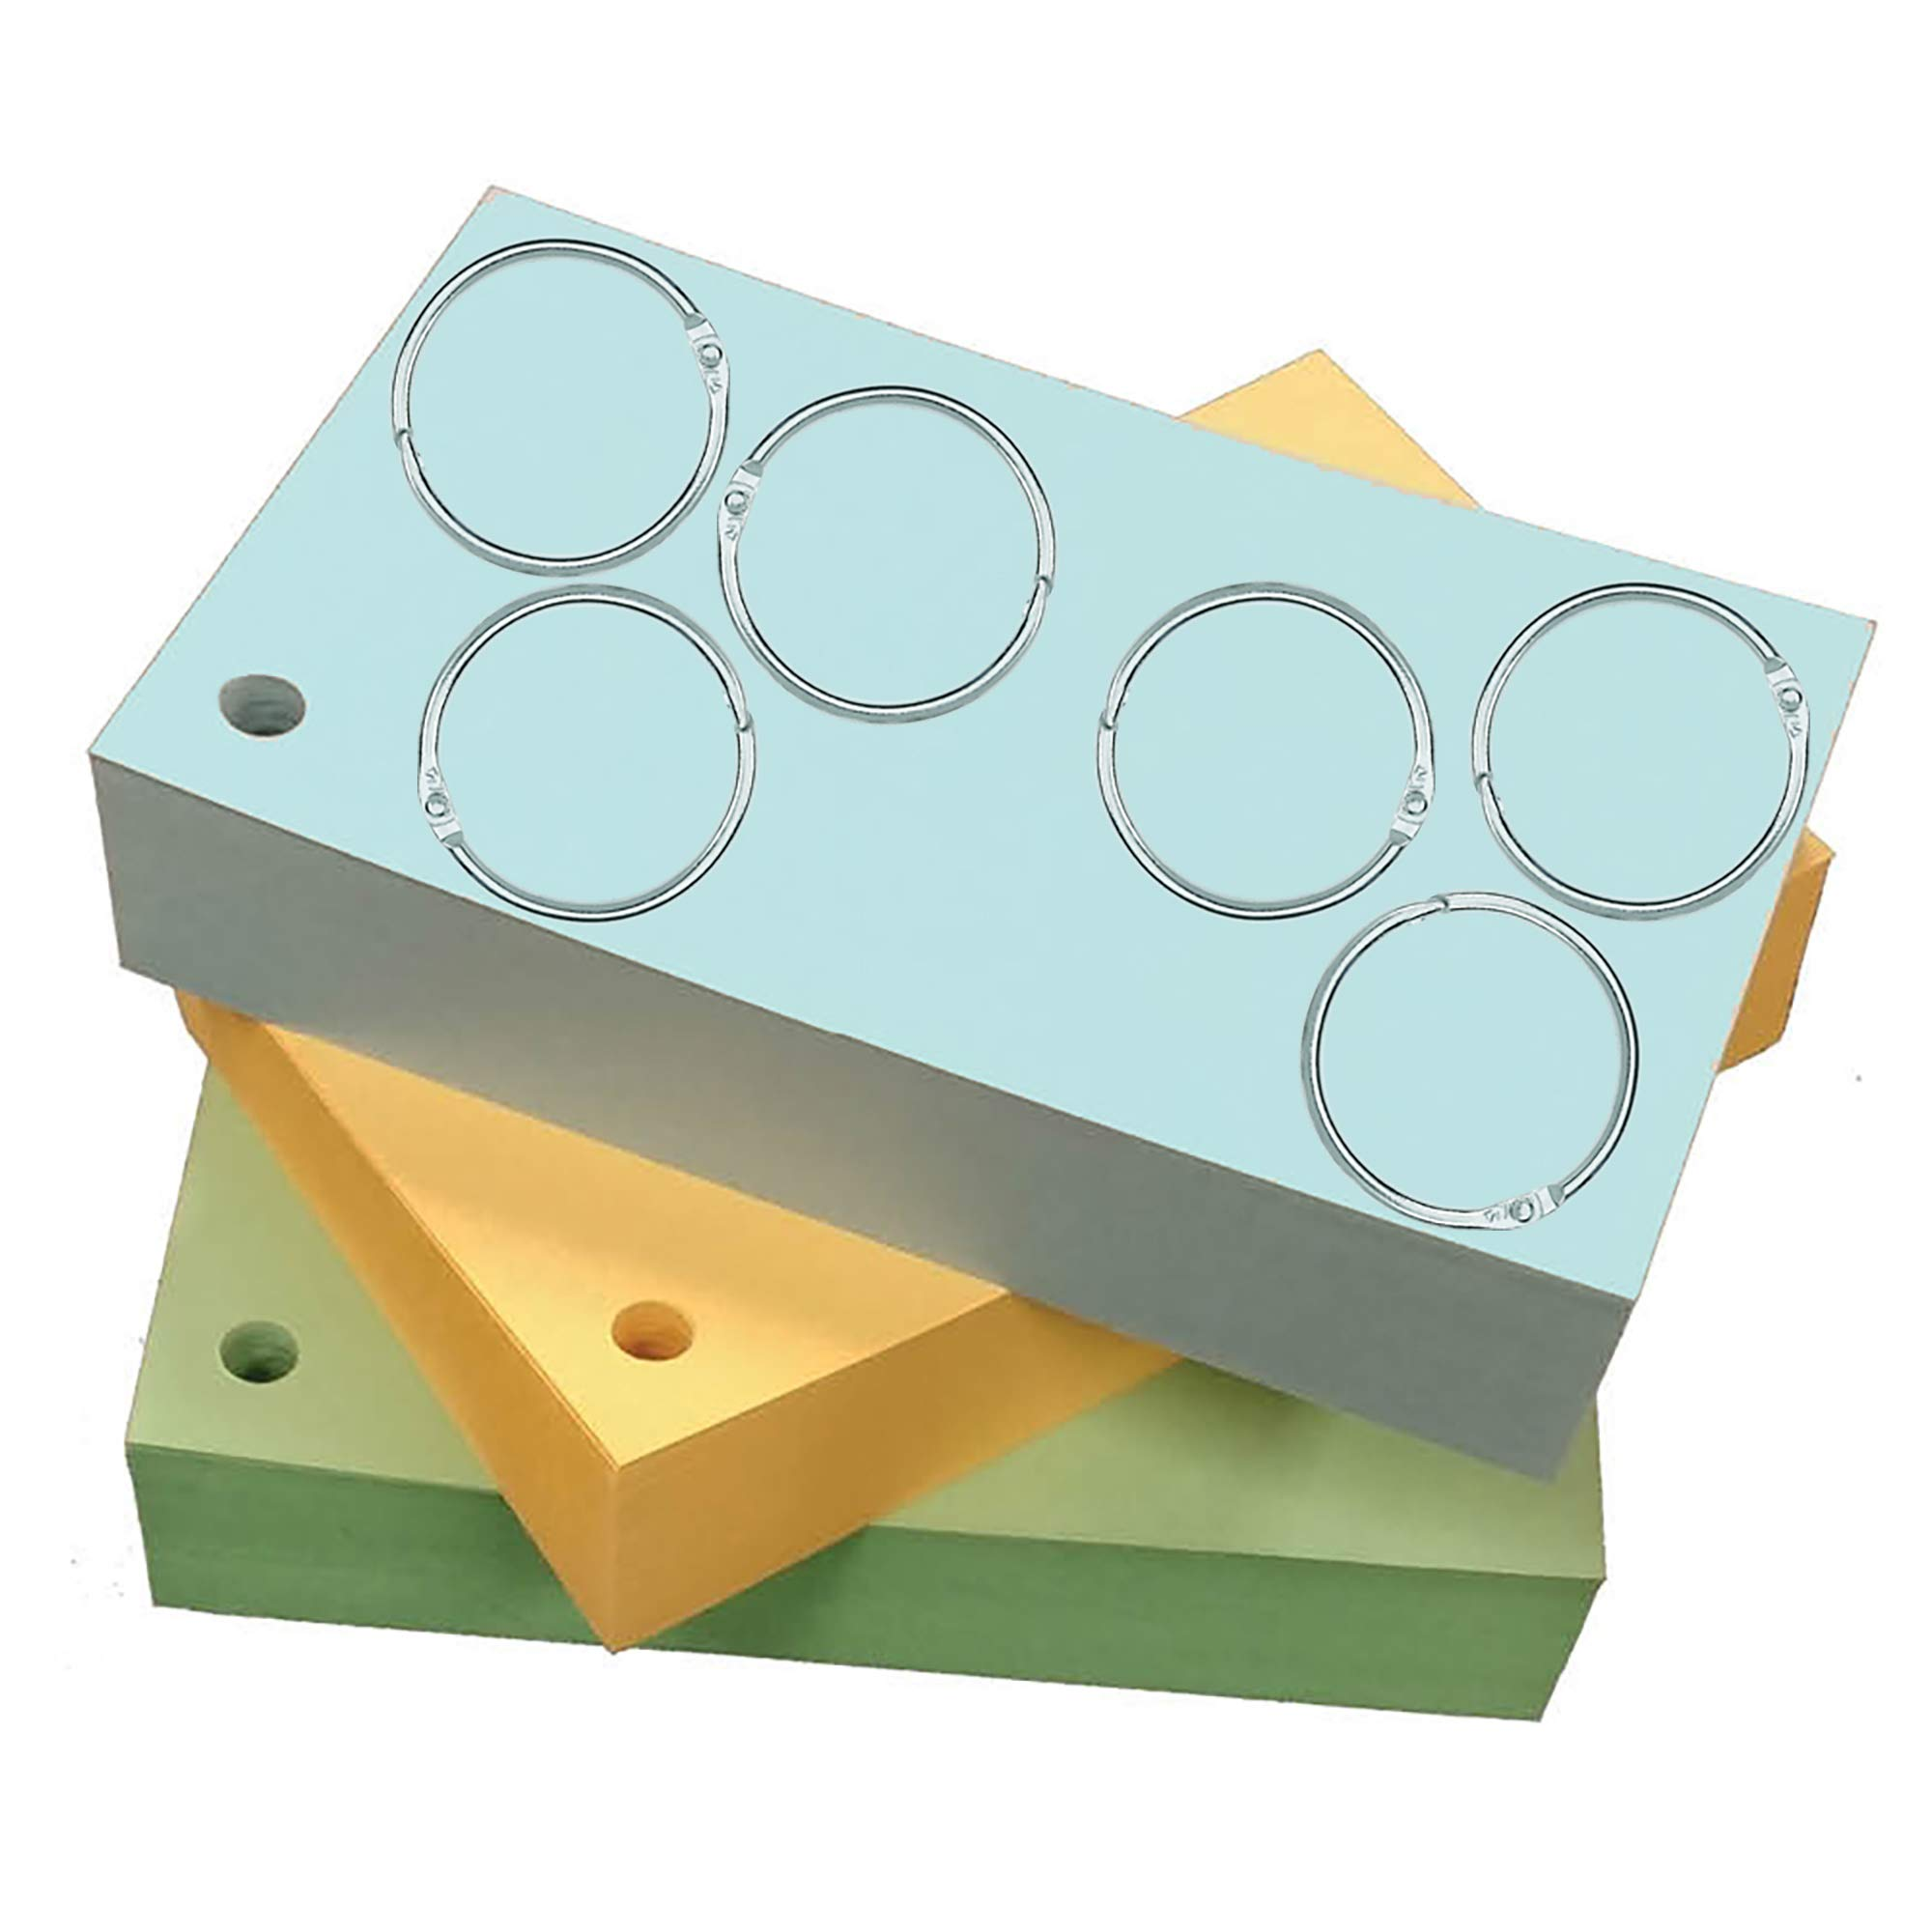 Debra Dale Designs 3'' X 5'' Standard 110# Ringed Index Cards - 300 Cards - Single Hole Punched - Includes Six Metal Binder Rings - Three Pastel Colors - Blue, Green, Buff - Packaged 100 Of Each Color by DEBRADALE DESIGNS